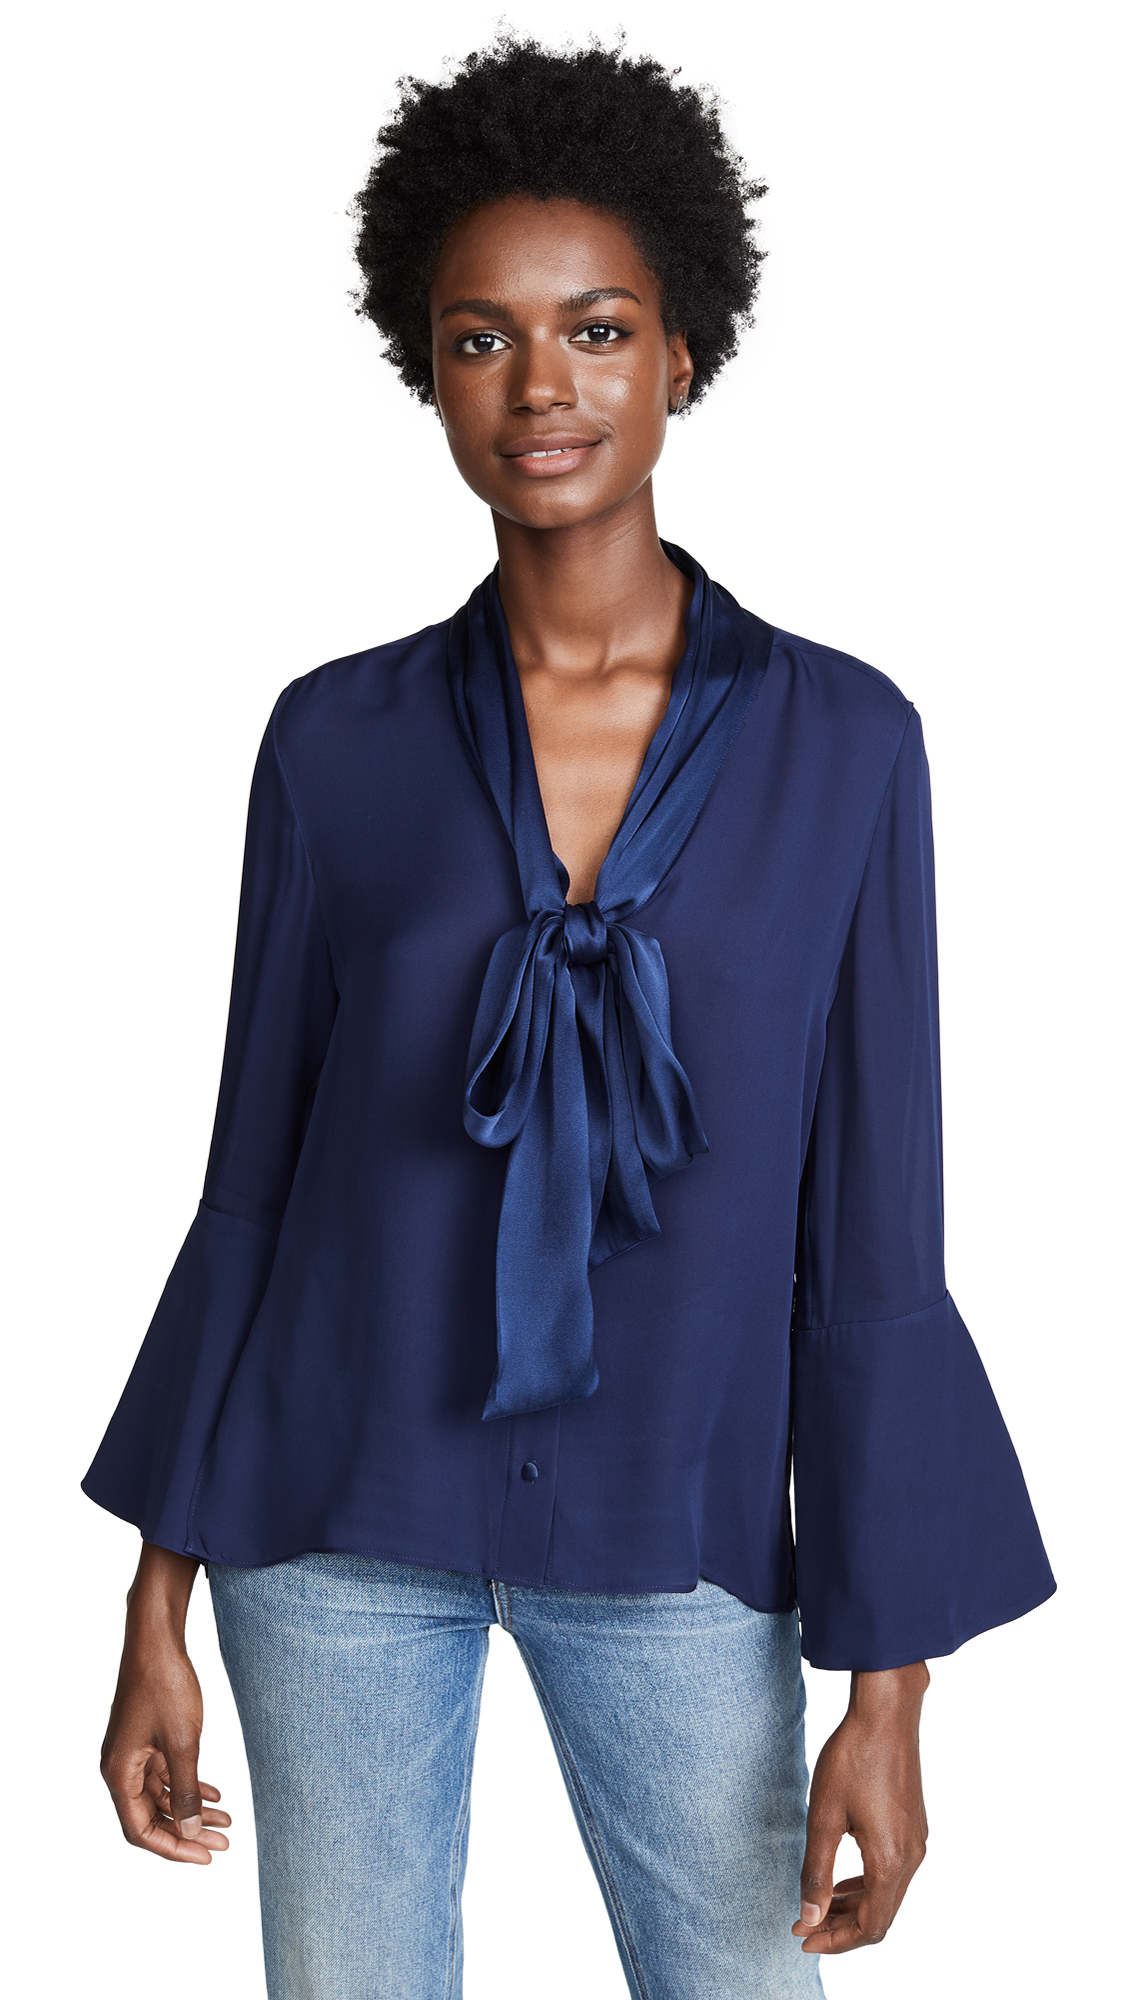 552d1fdf13922 ALICE AND OLIVIA MEREDITH TIE NECK BLOUSE